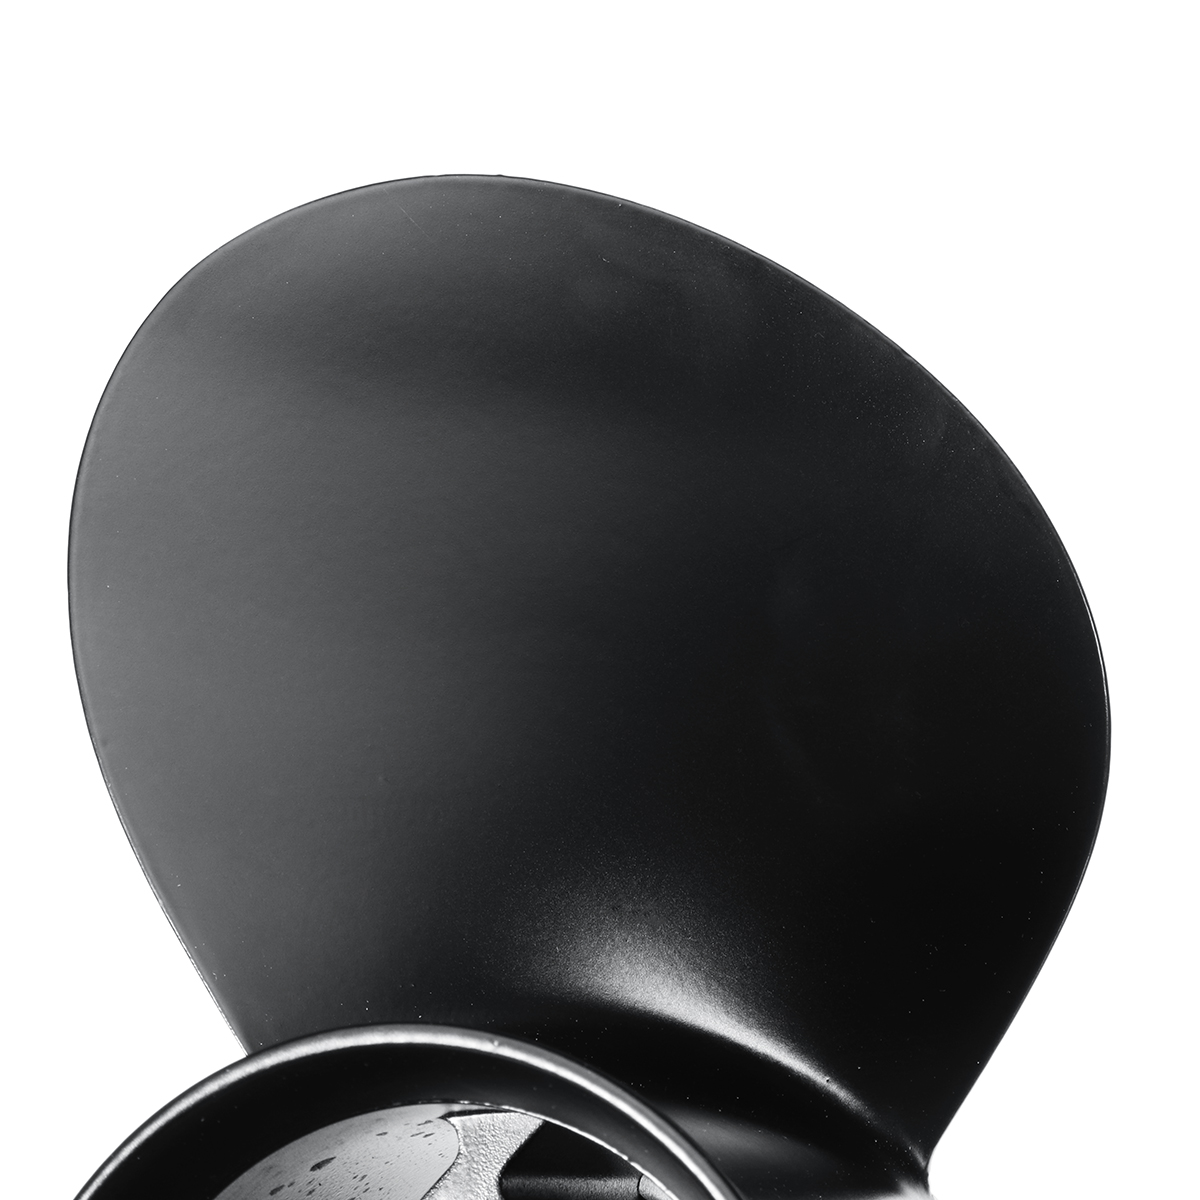 9.9 x 13 Mariner Boat Outboard Propeller For Mercury Engine 25-30HP 48-19640A40